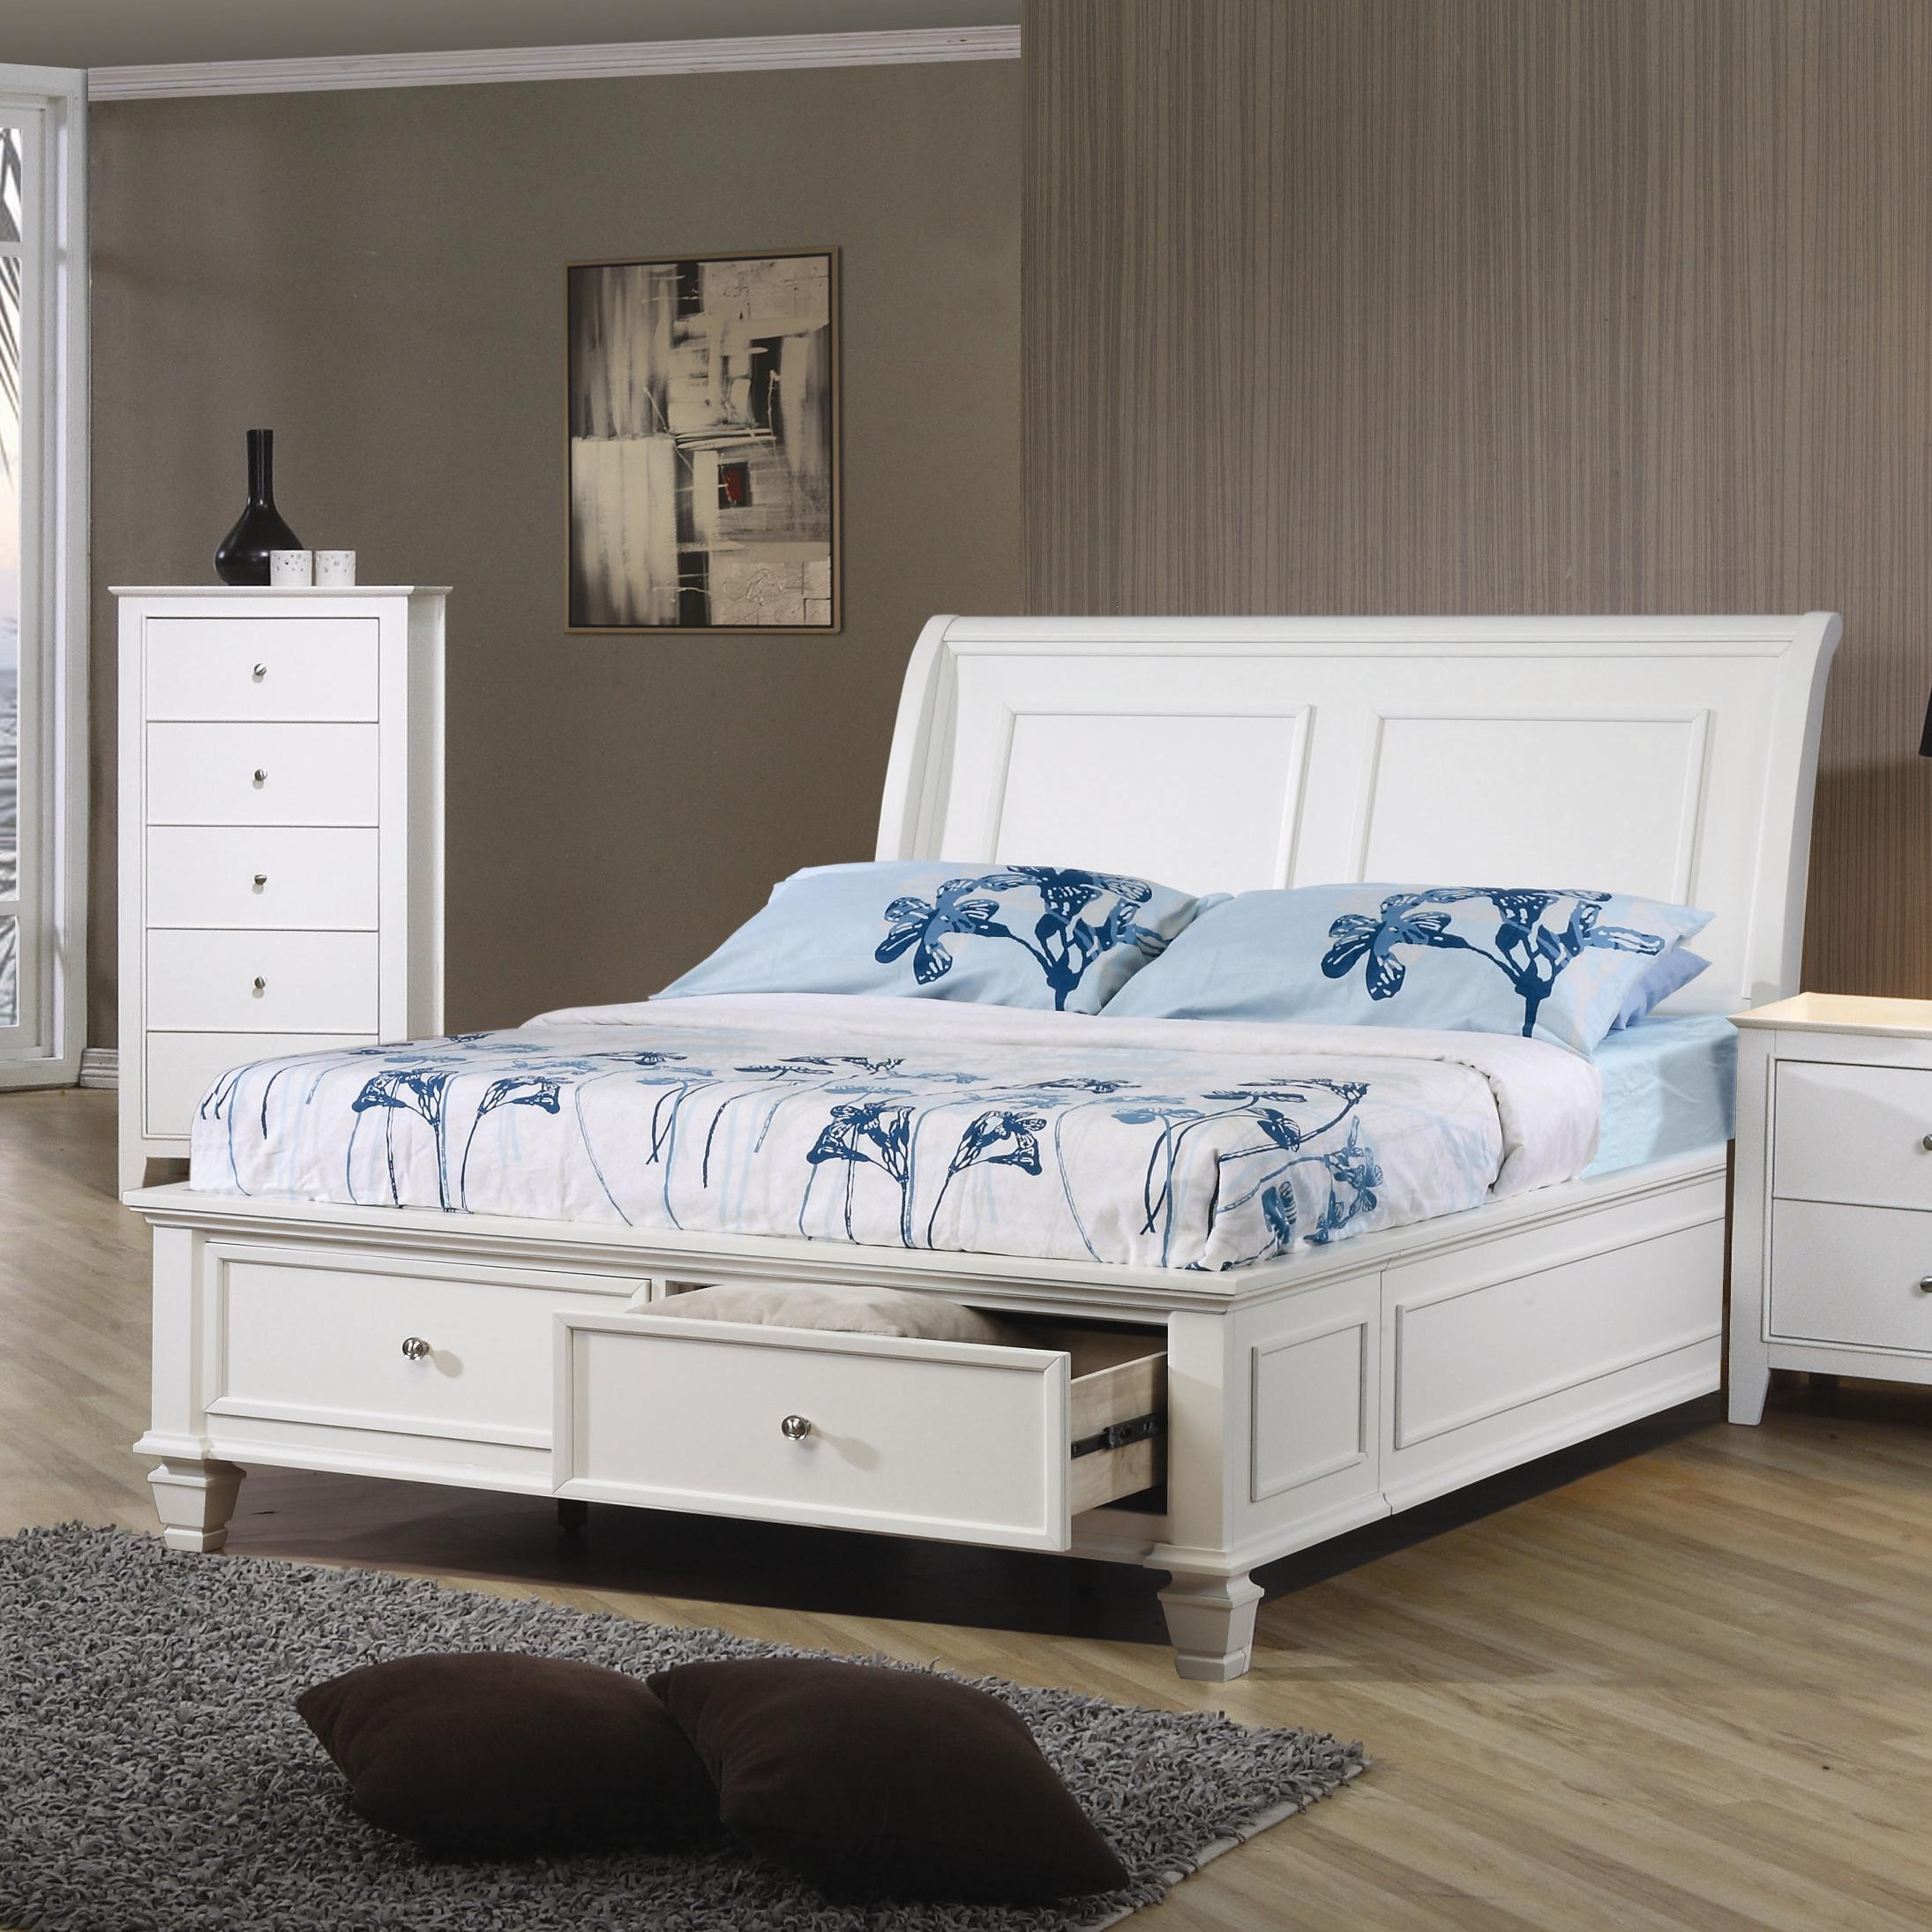 size storage white drawers captivating inspiration inspirational with designing king full ideas home bed underneath decorating appealing frame in twin